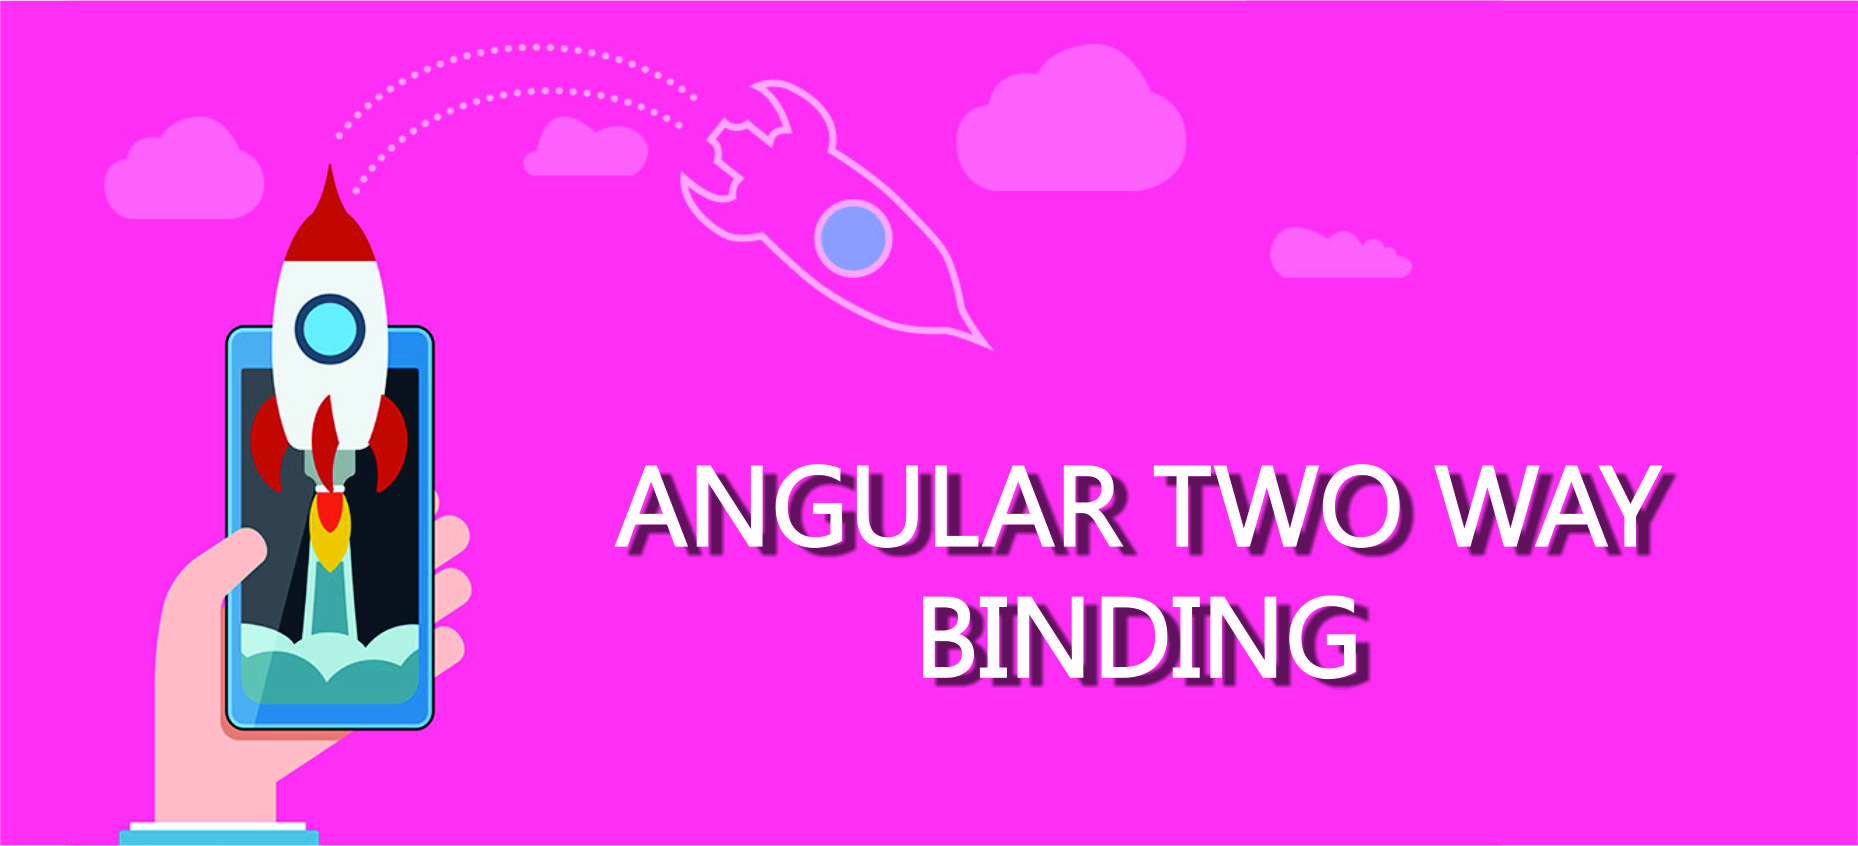 Angular Two Way Binding